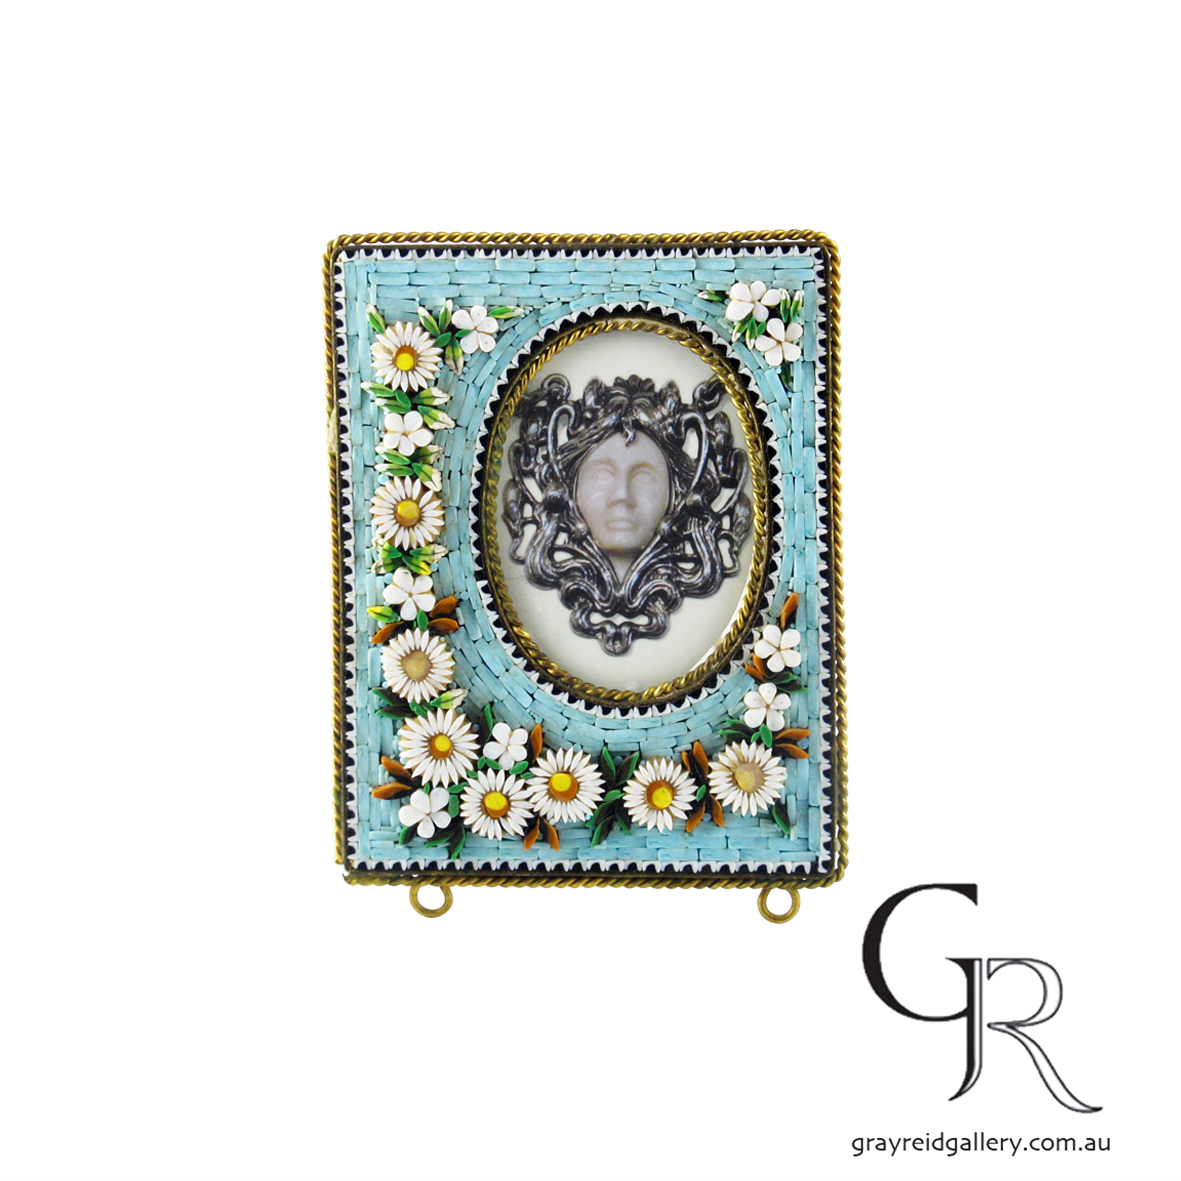 antiques and collectables melbourne micro mosaic picture frame Gray Reid Gallery 5.jpg